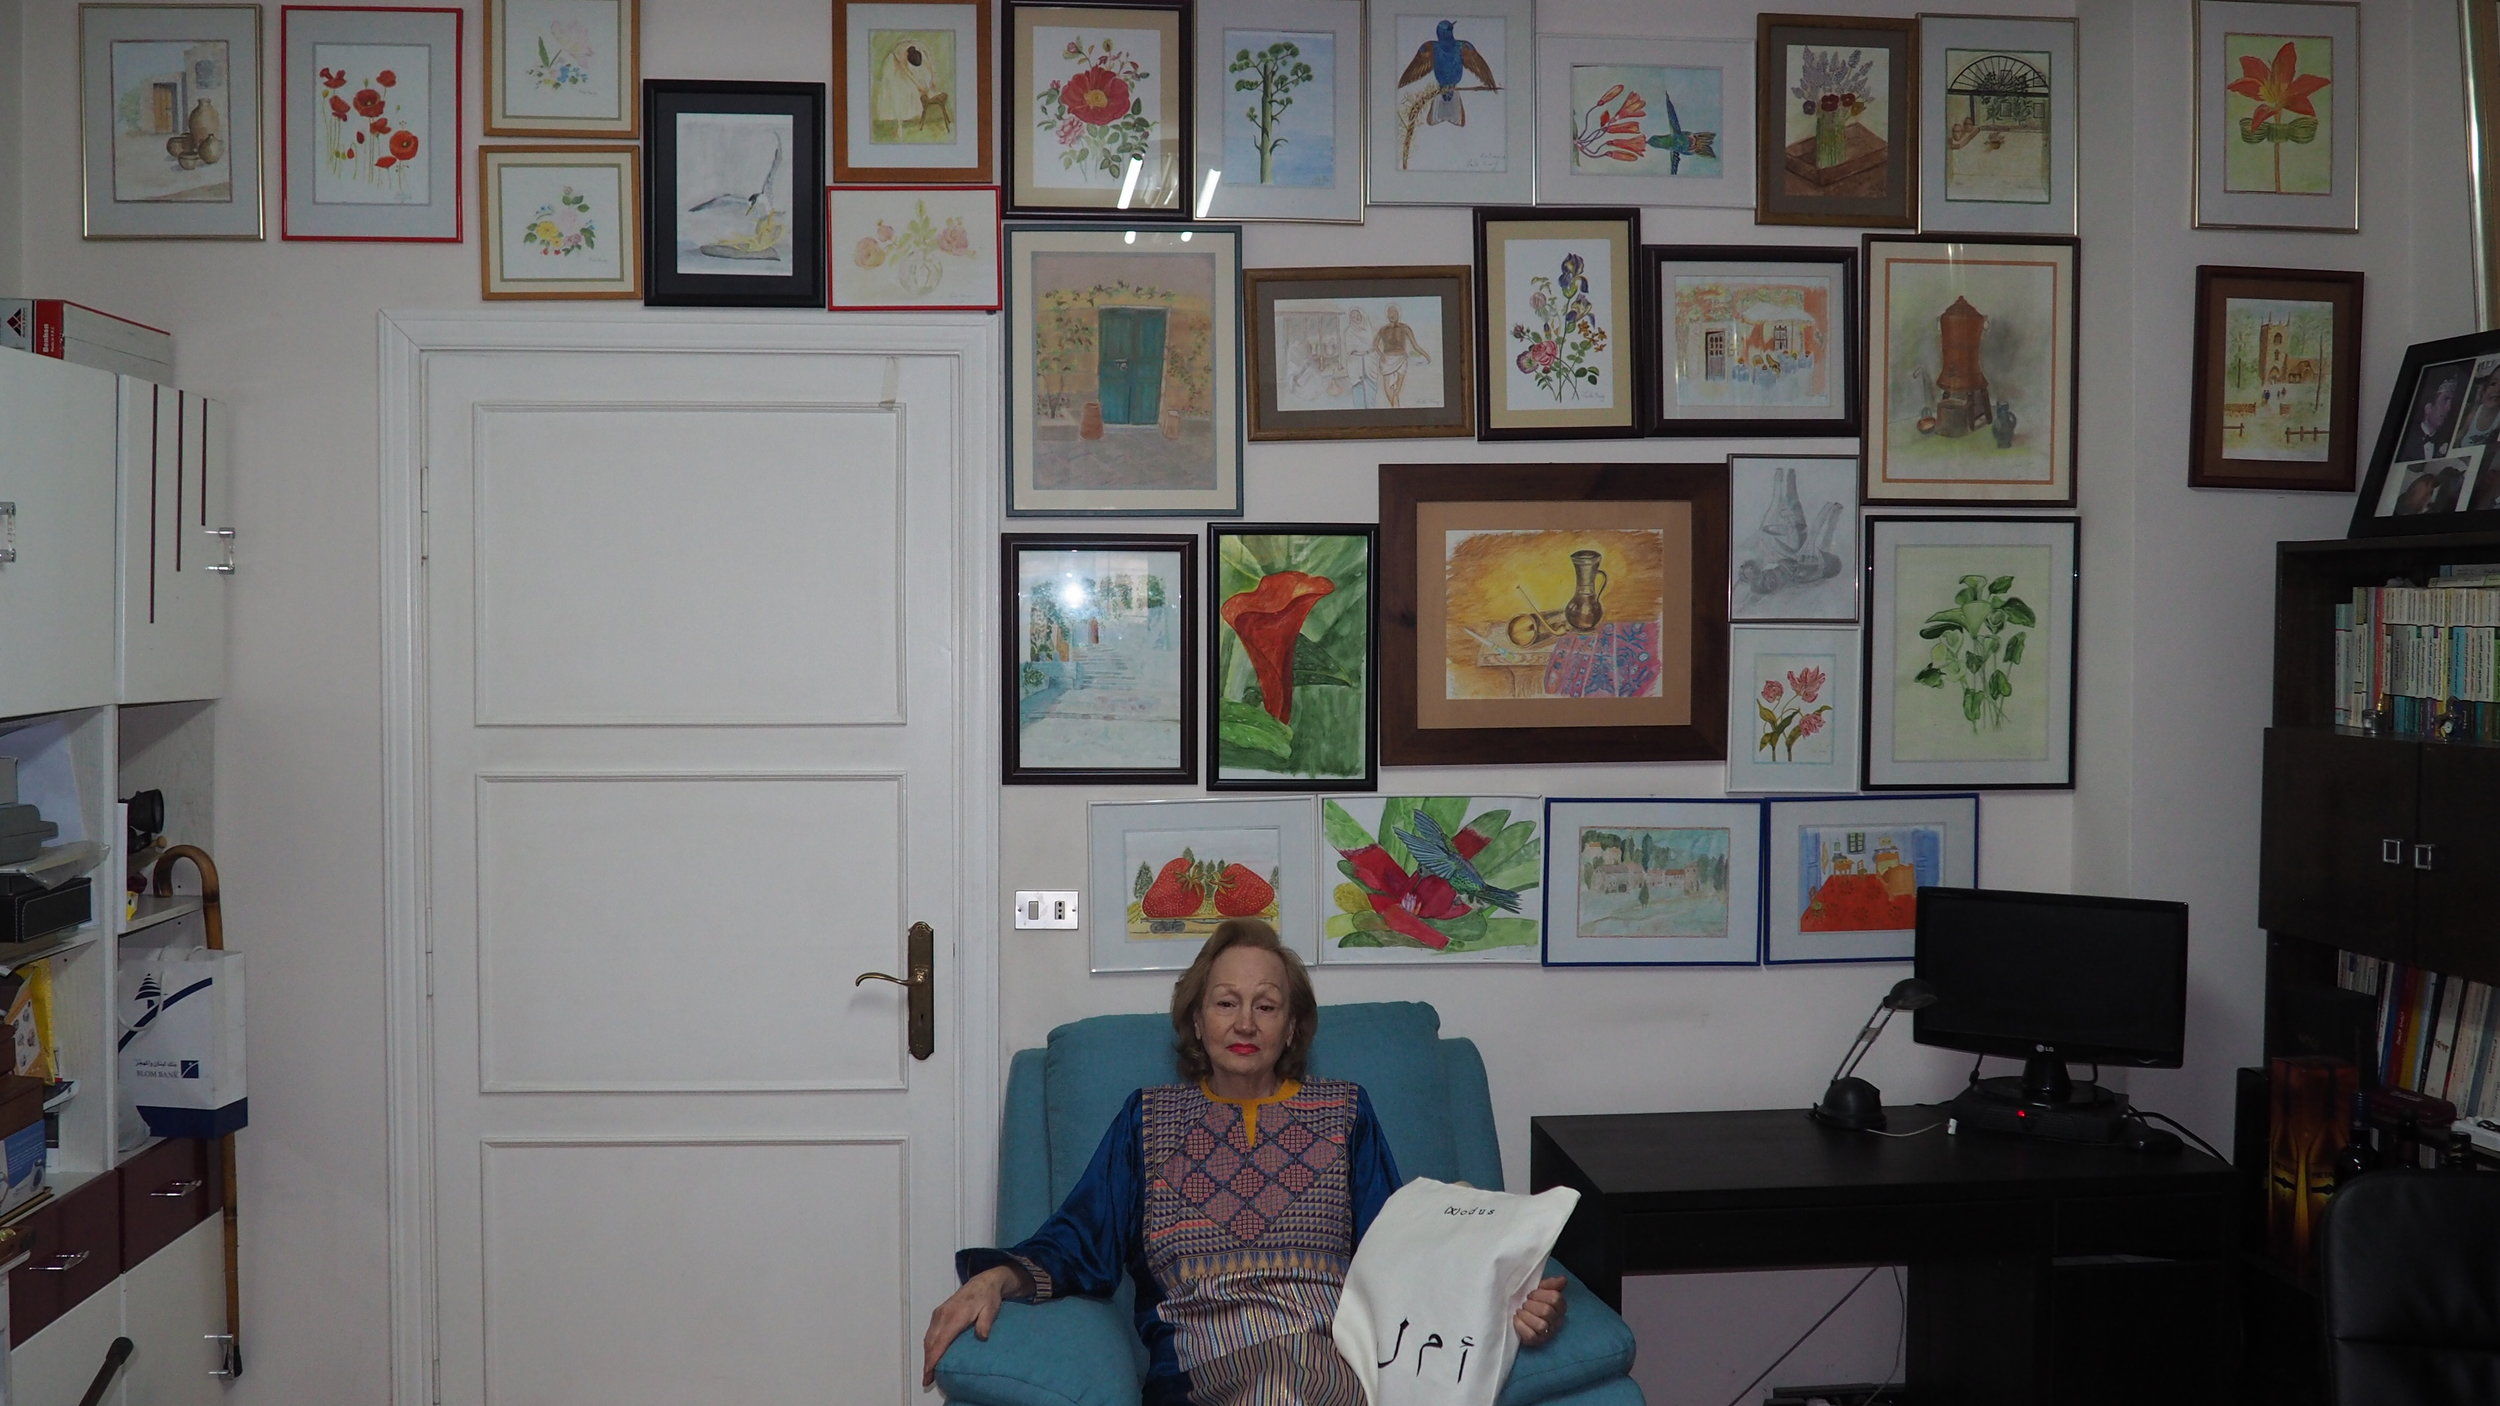 Leila sits in her private living room,in front of a collection of her own paintings.